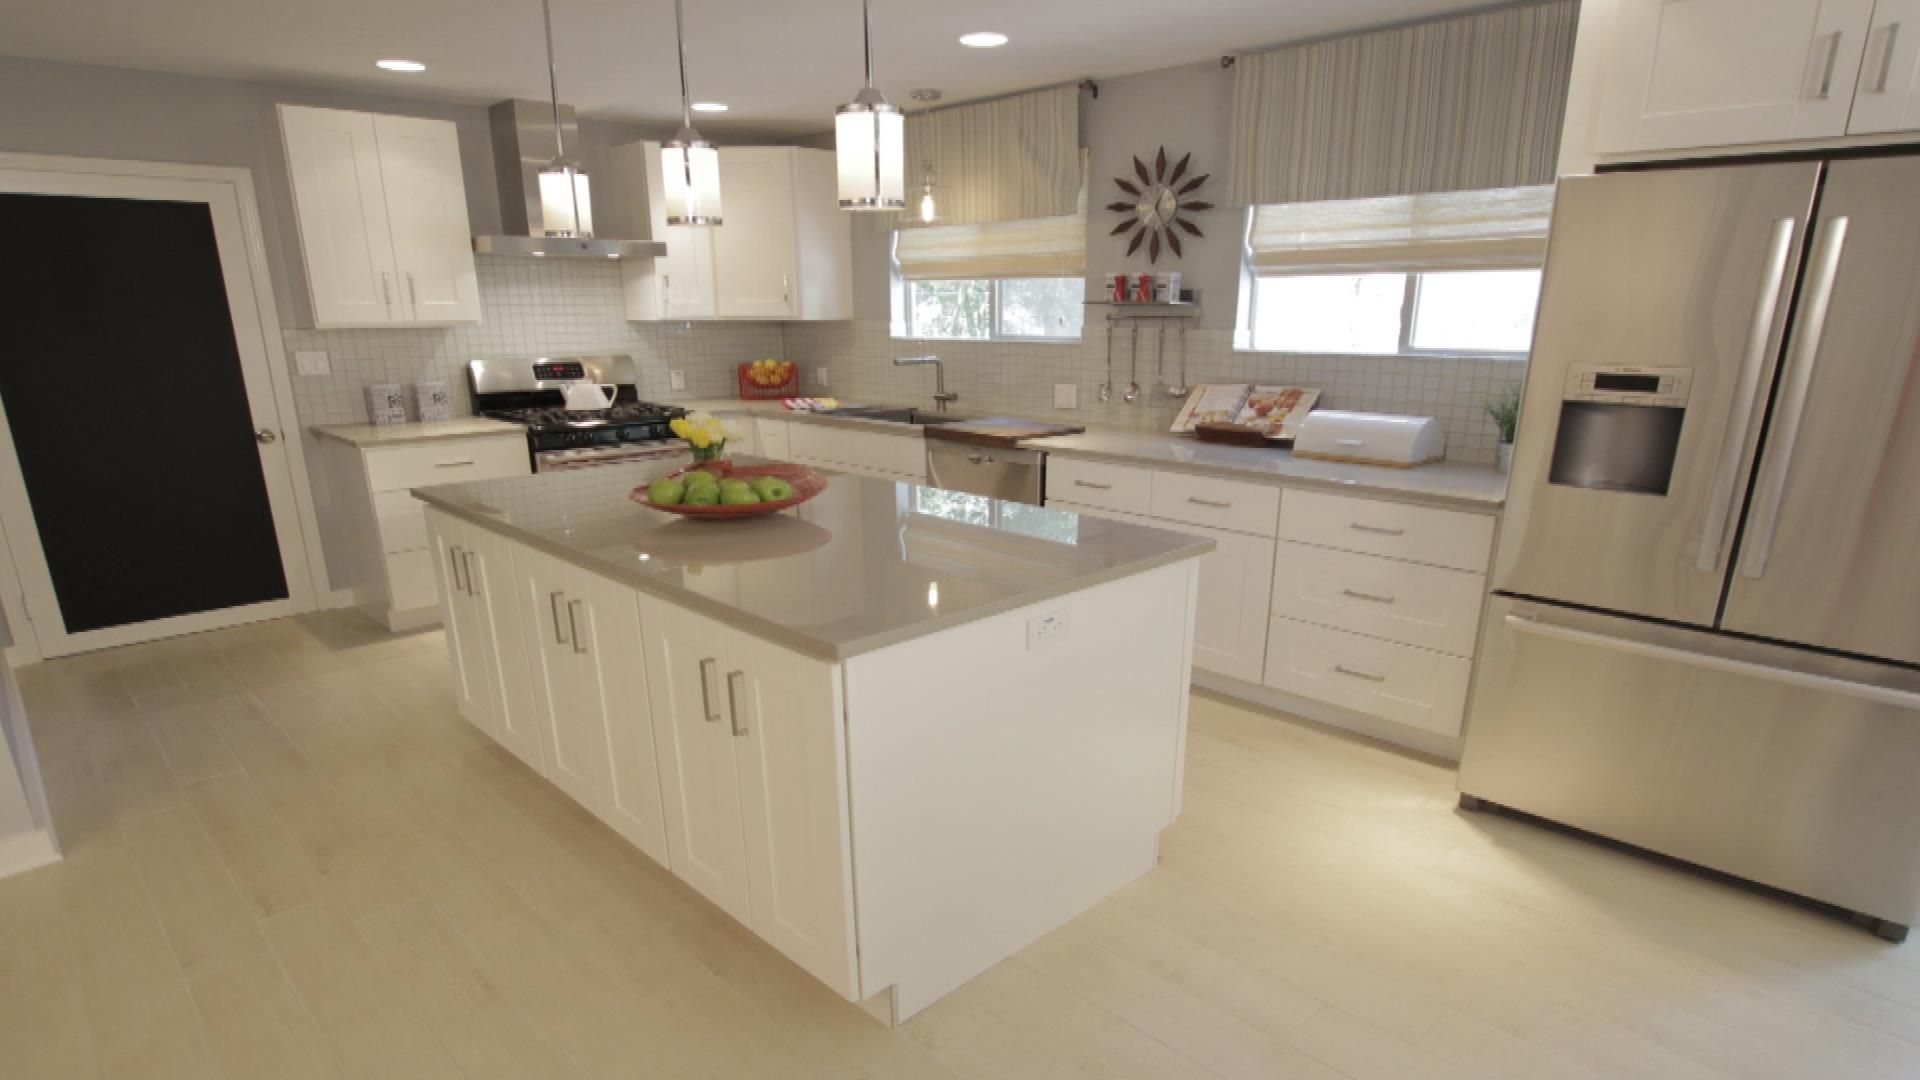 White Kitchen With Light Grey Countertops Kitchen Design Grey Kitchen Designs Home Kitchens